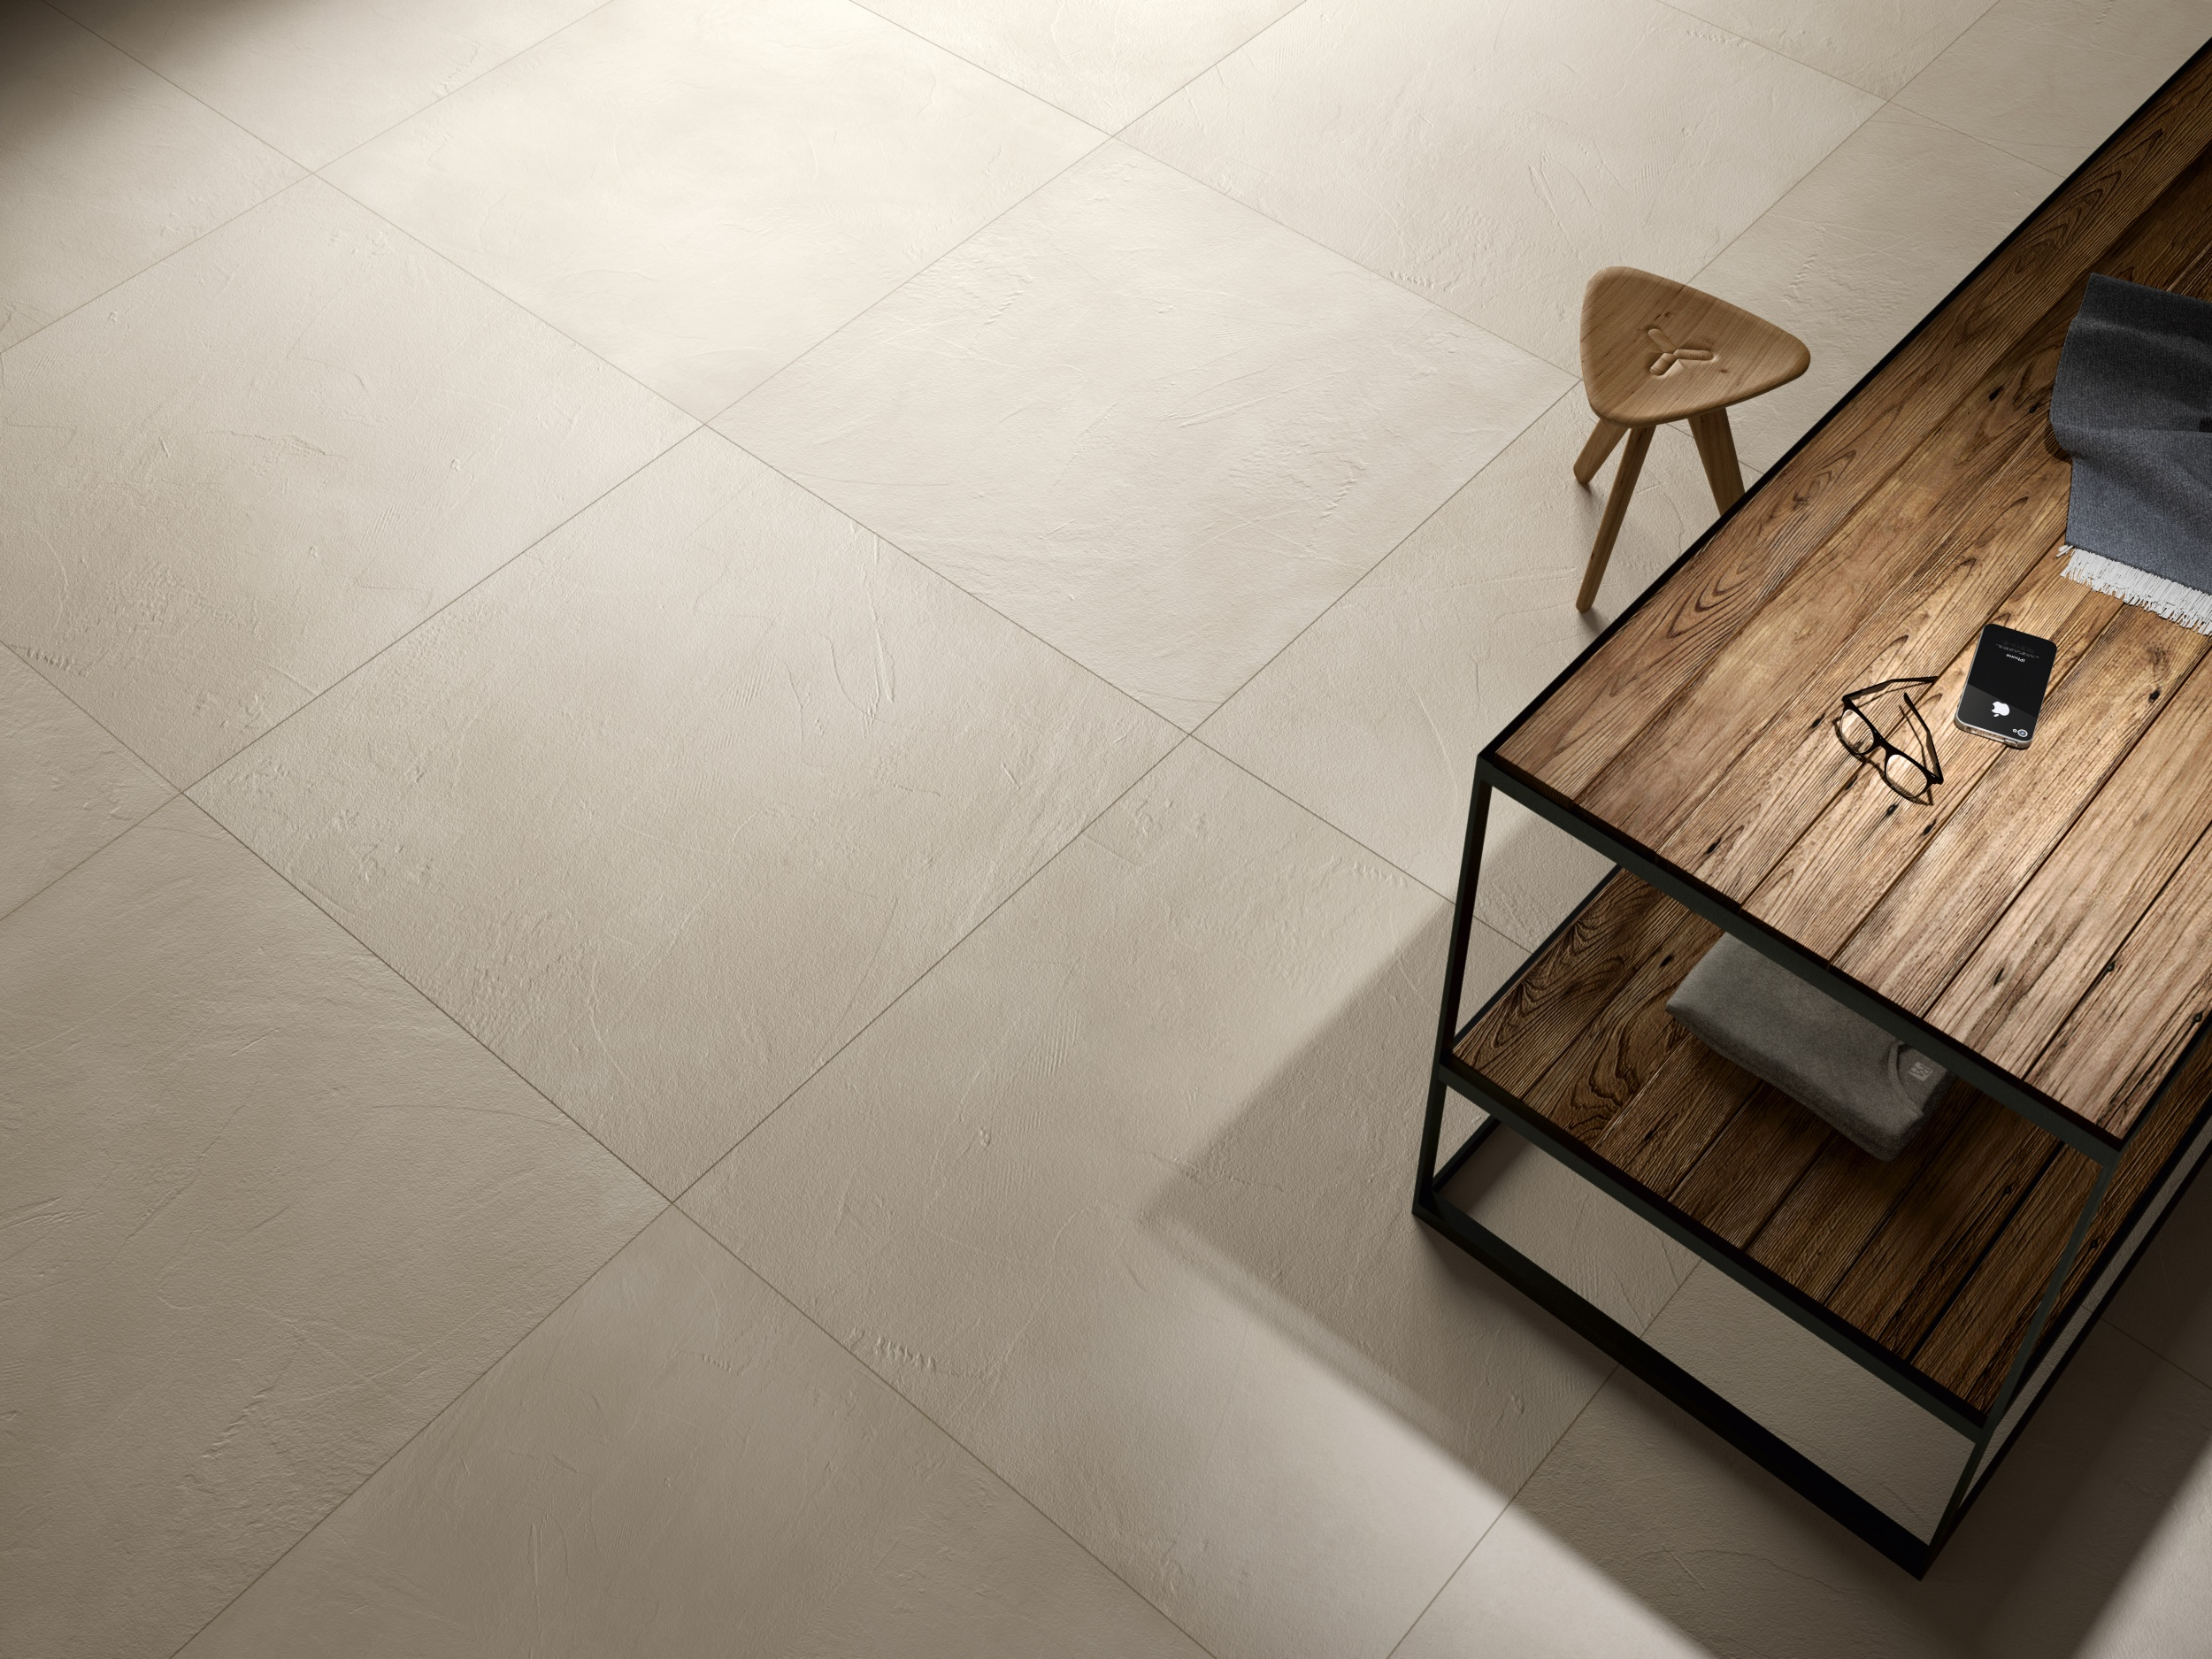 porcelain tile images: Resin Sense range high quality photo